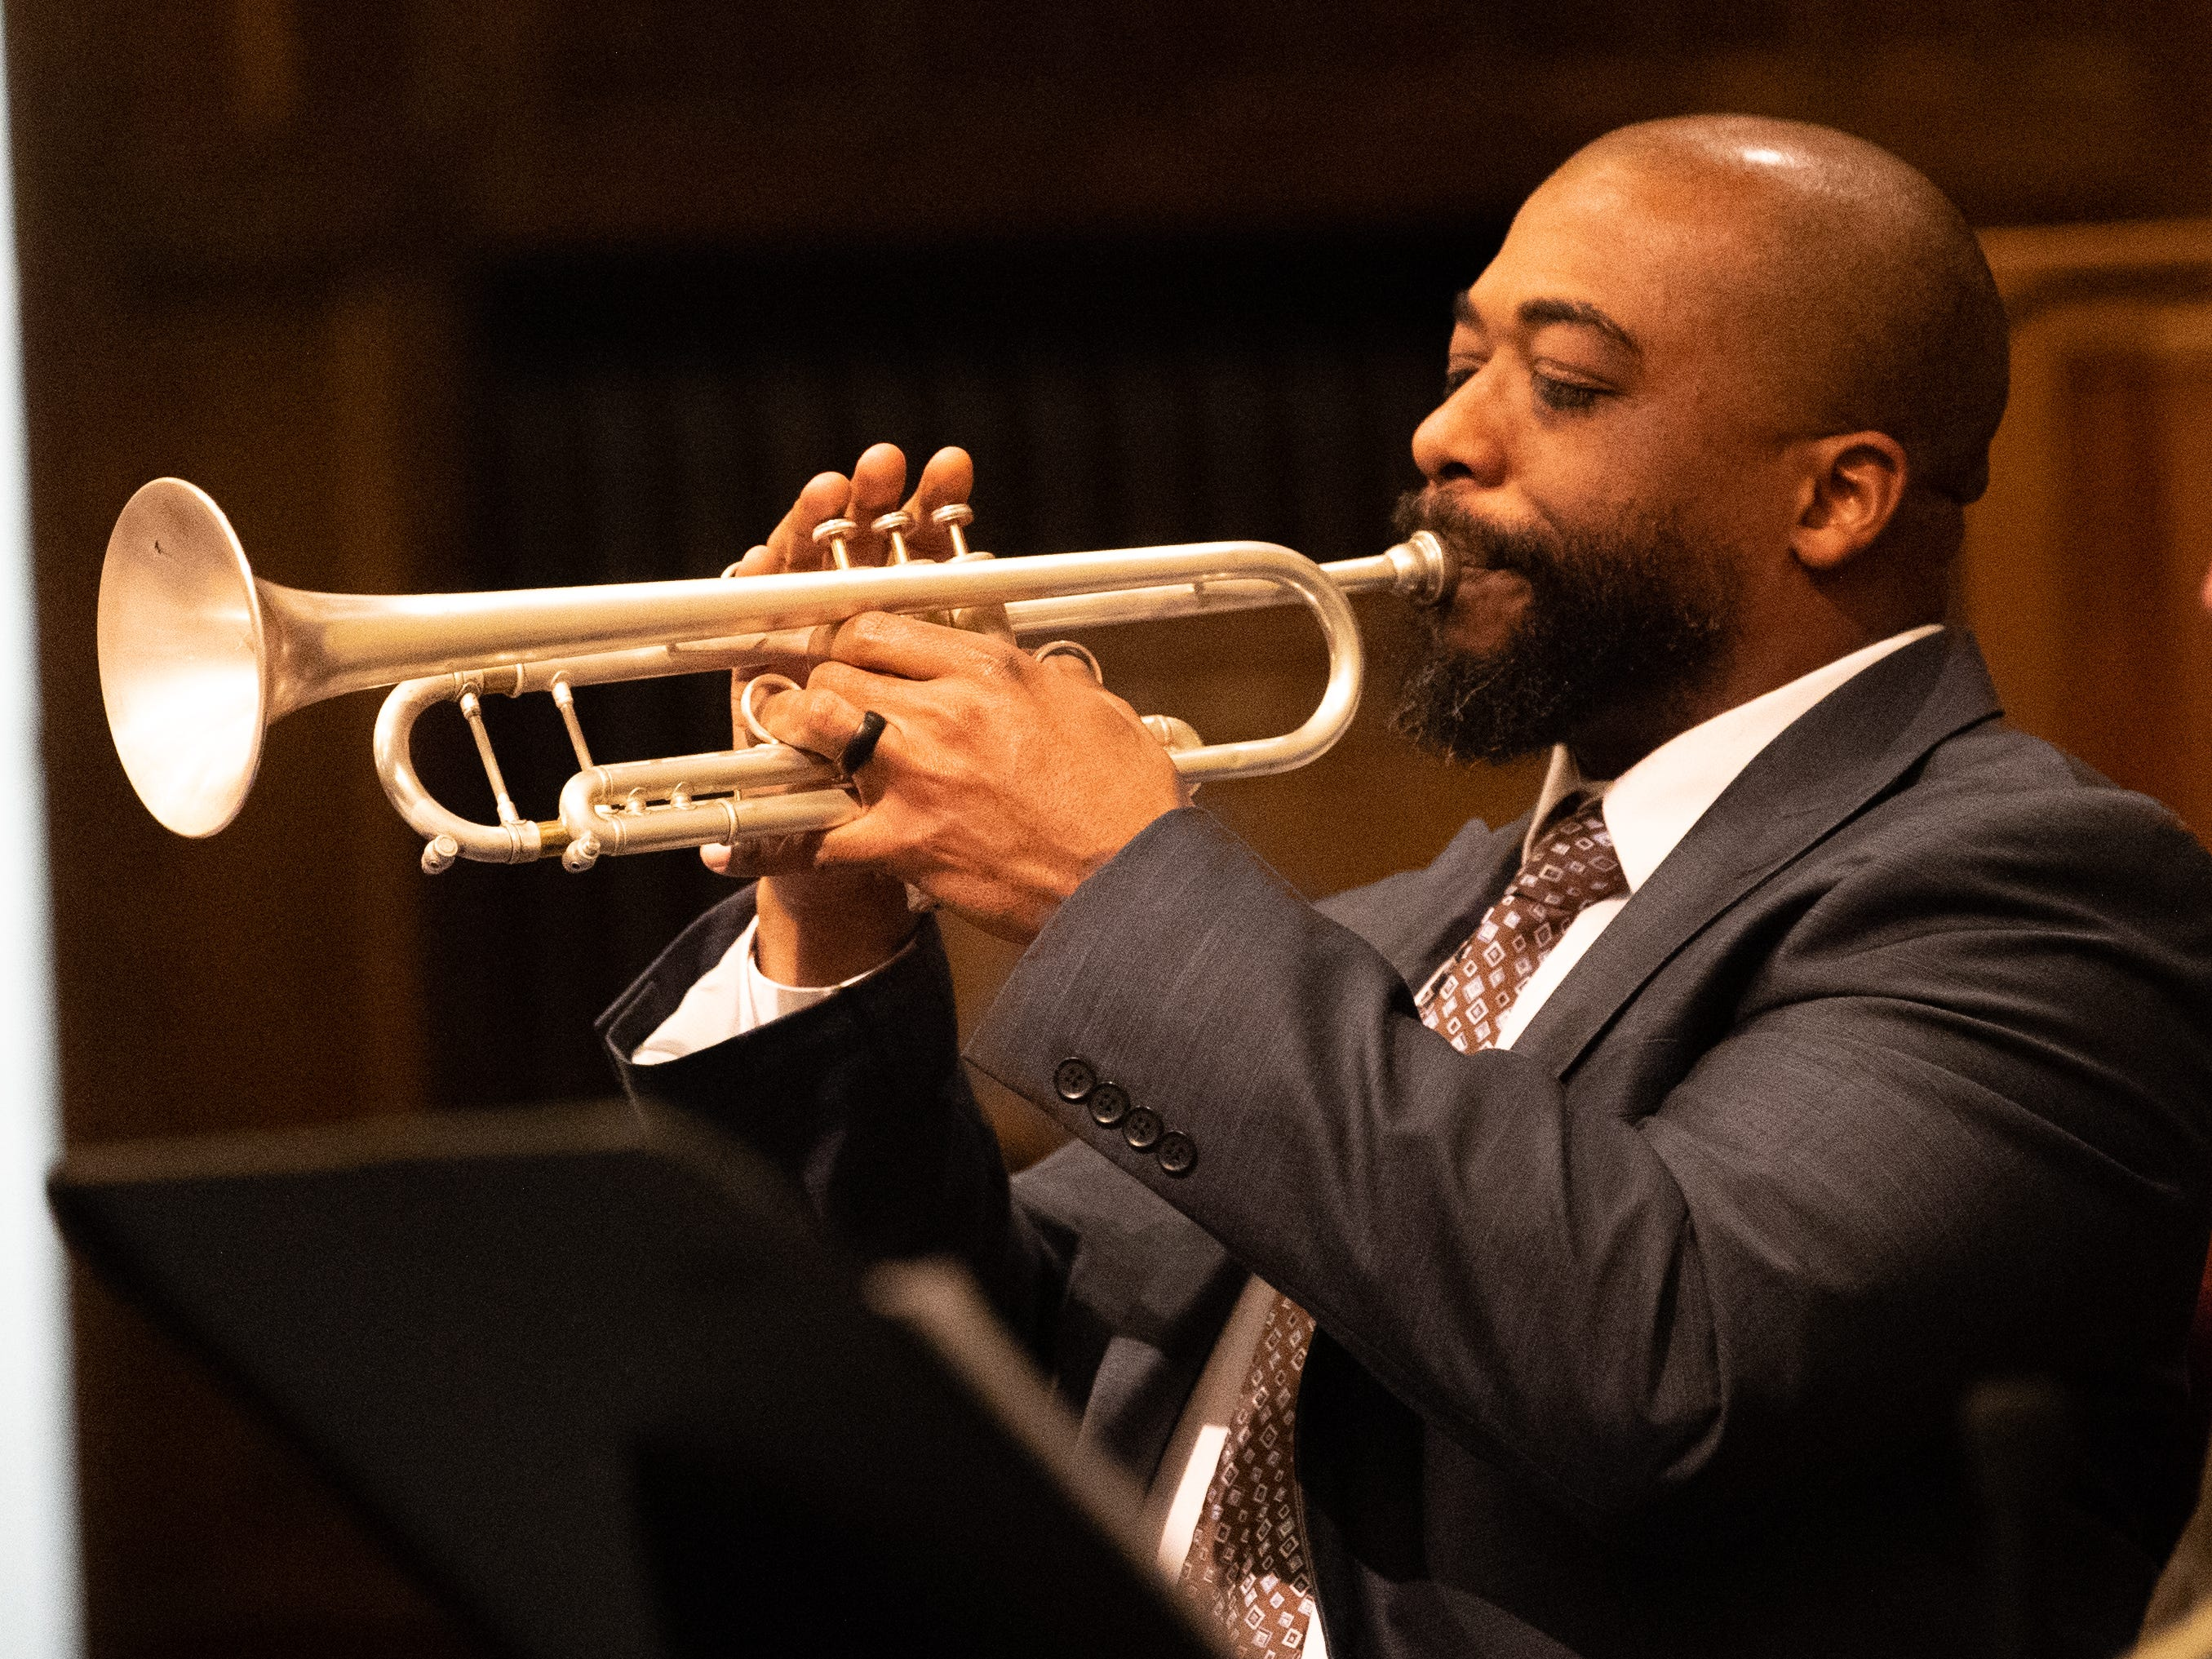 Tim Thompson plays the trumpet during the 21st annual Jazz Vespers concert at First Presbyterian Church in York, January 12, 2019.